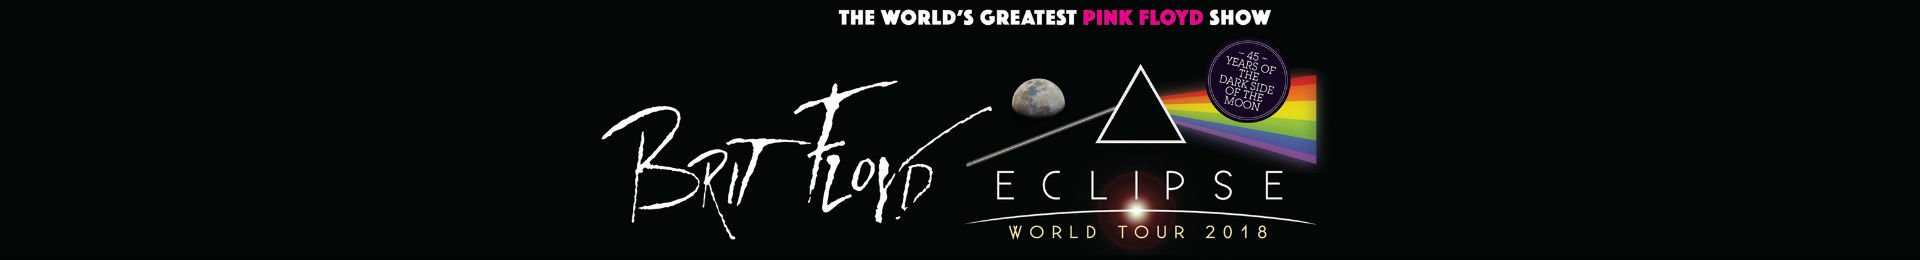 Brit Floyd – Eclipse World Tour 2018 tickets